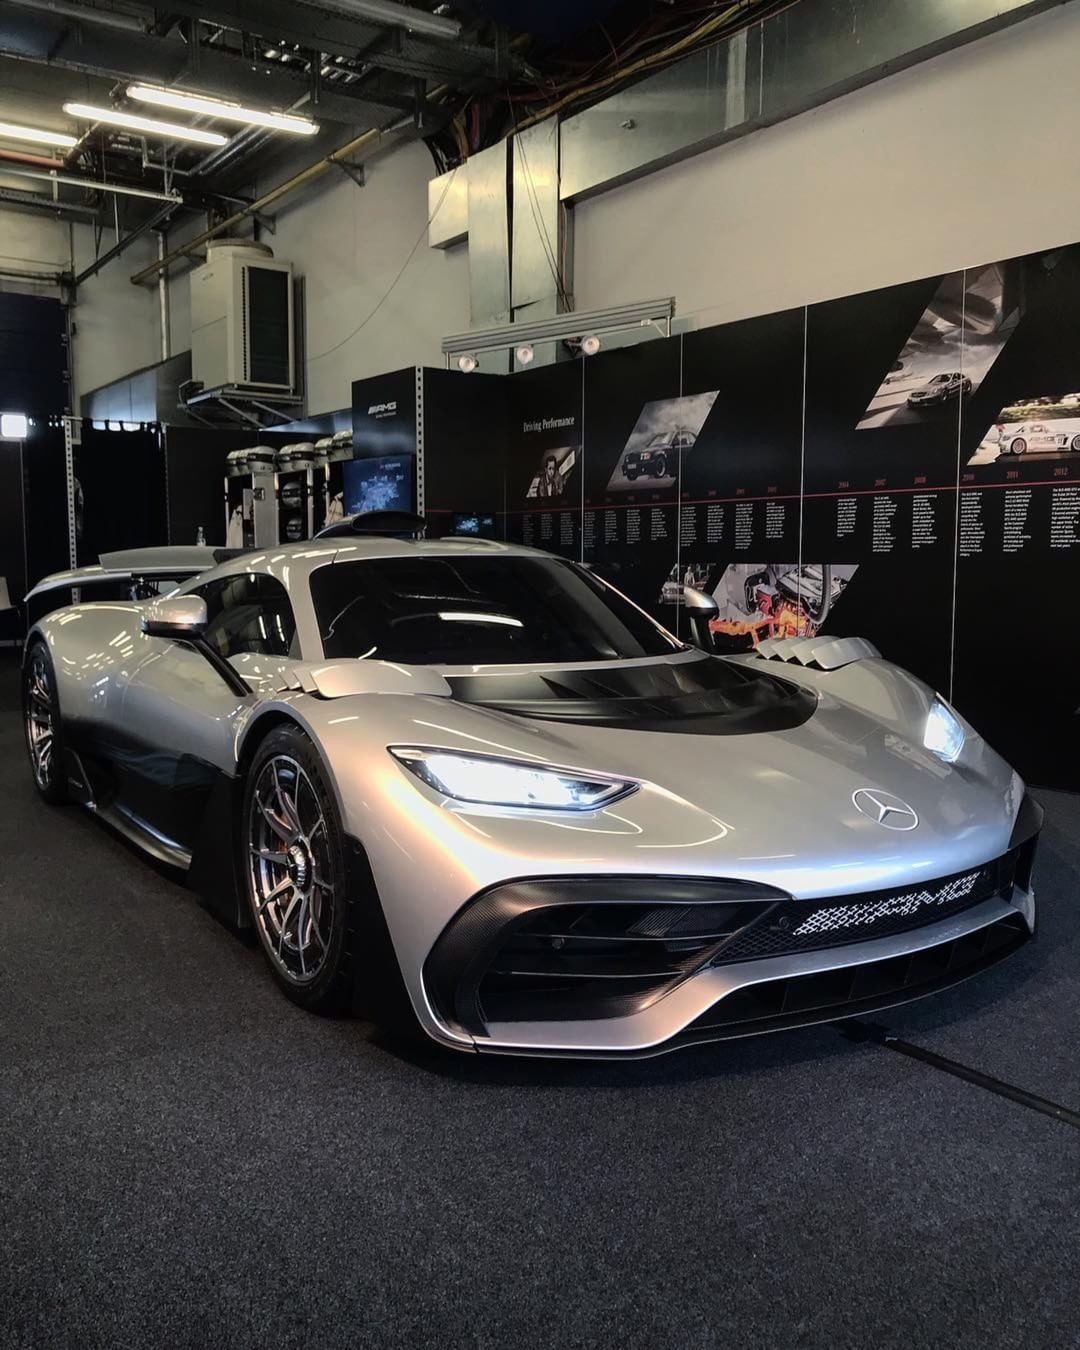 Kingzmotors Supercars Cars Supercars Racecar Musclecars Musclecar Sportscars Sportcars For More Visit Pikgram Luxury Cars Audi Luxury Cars Super Cars